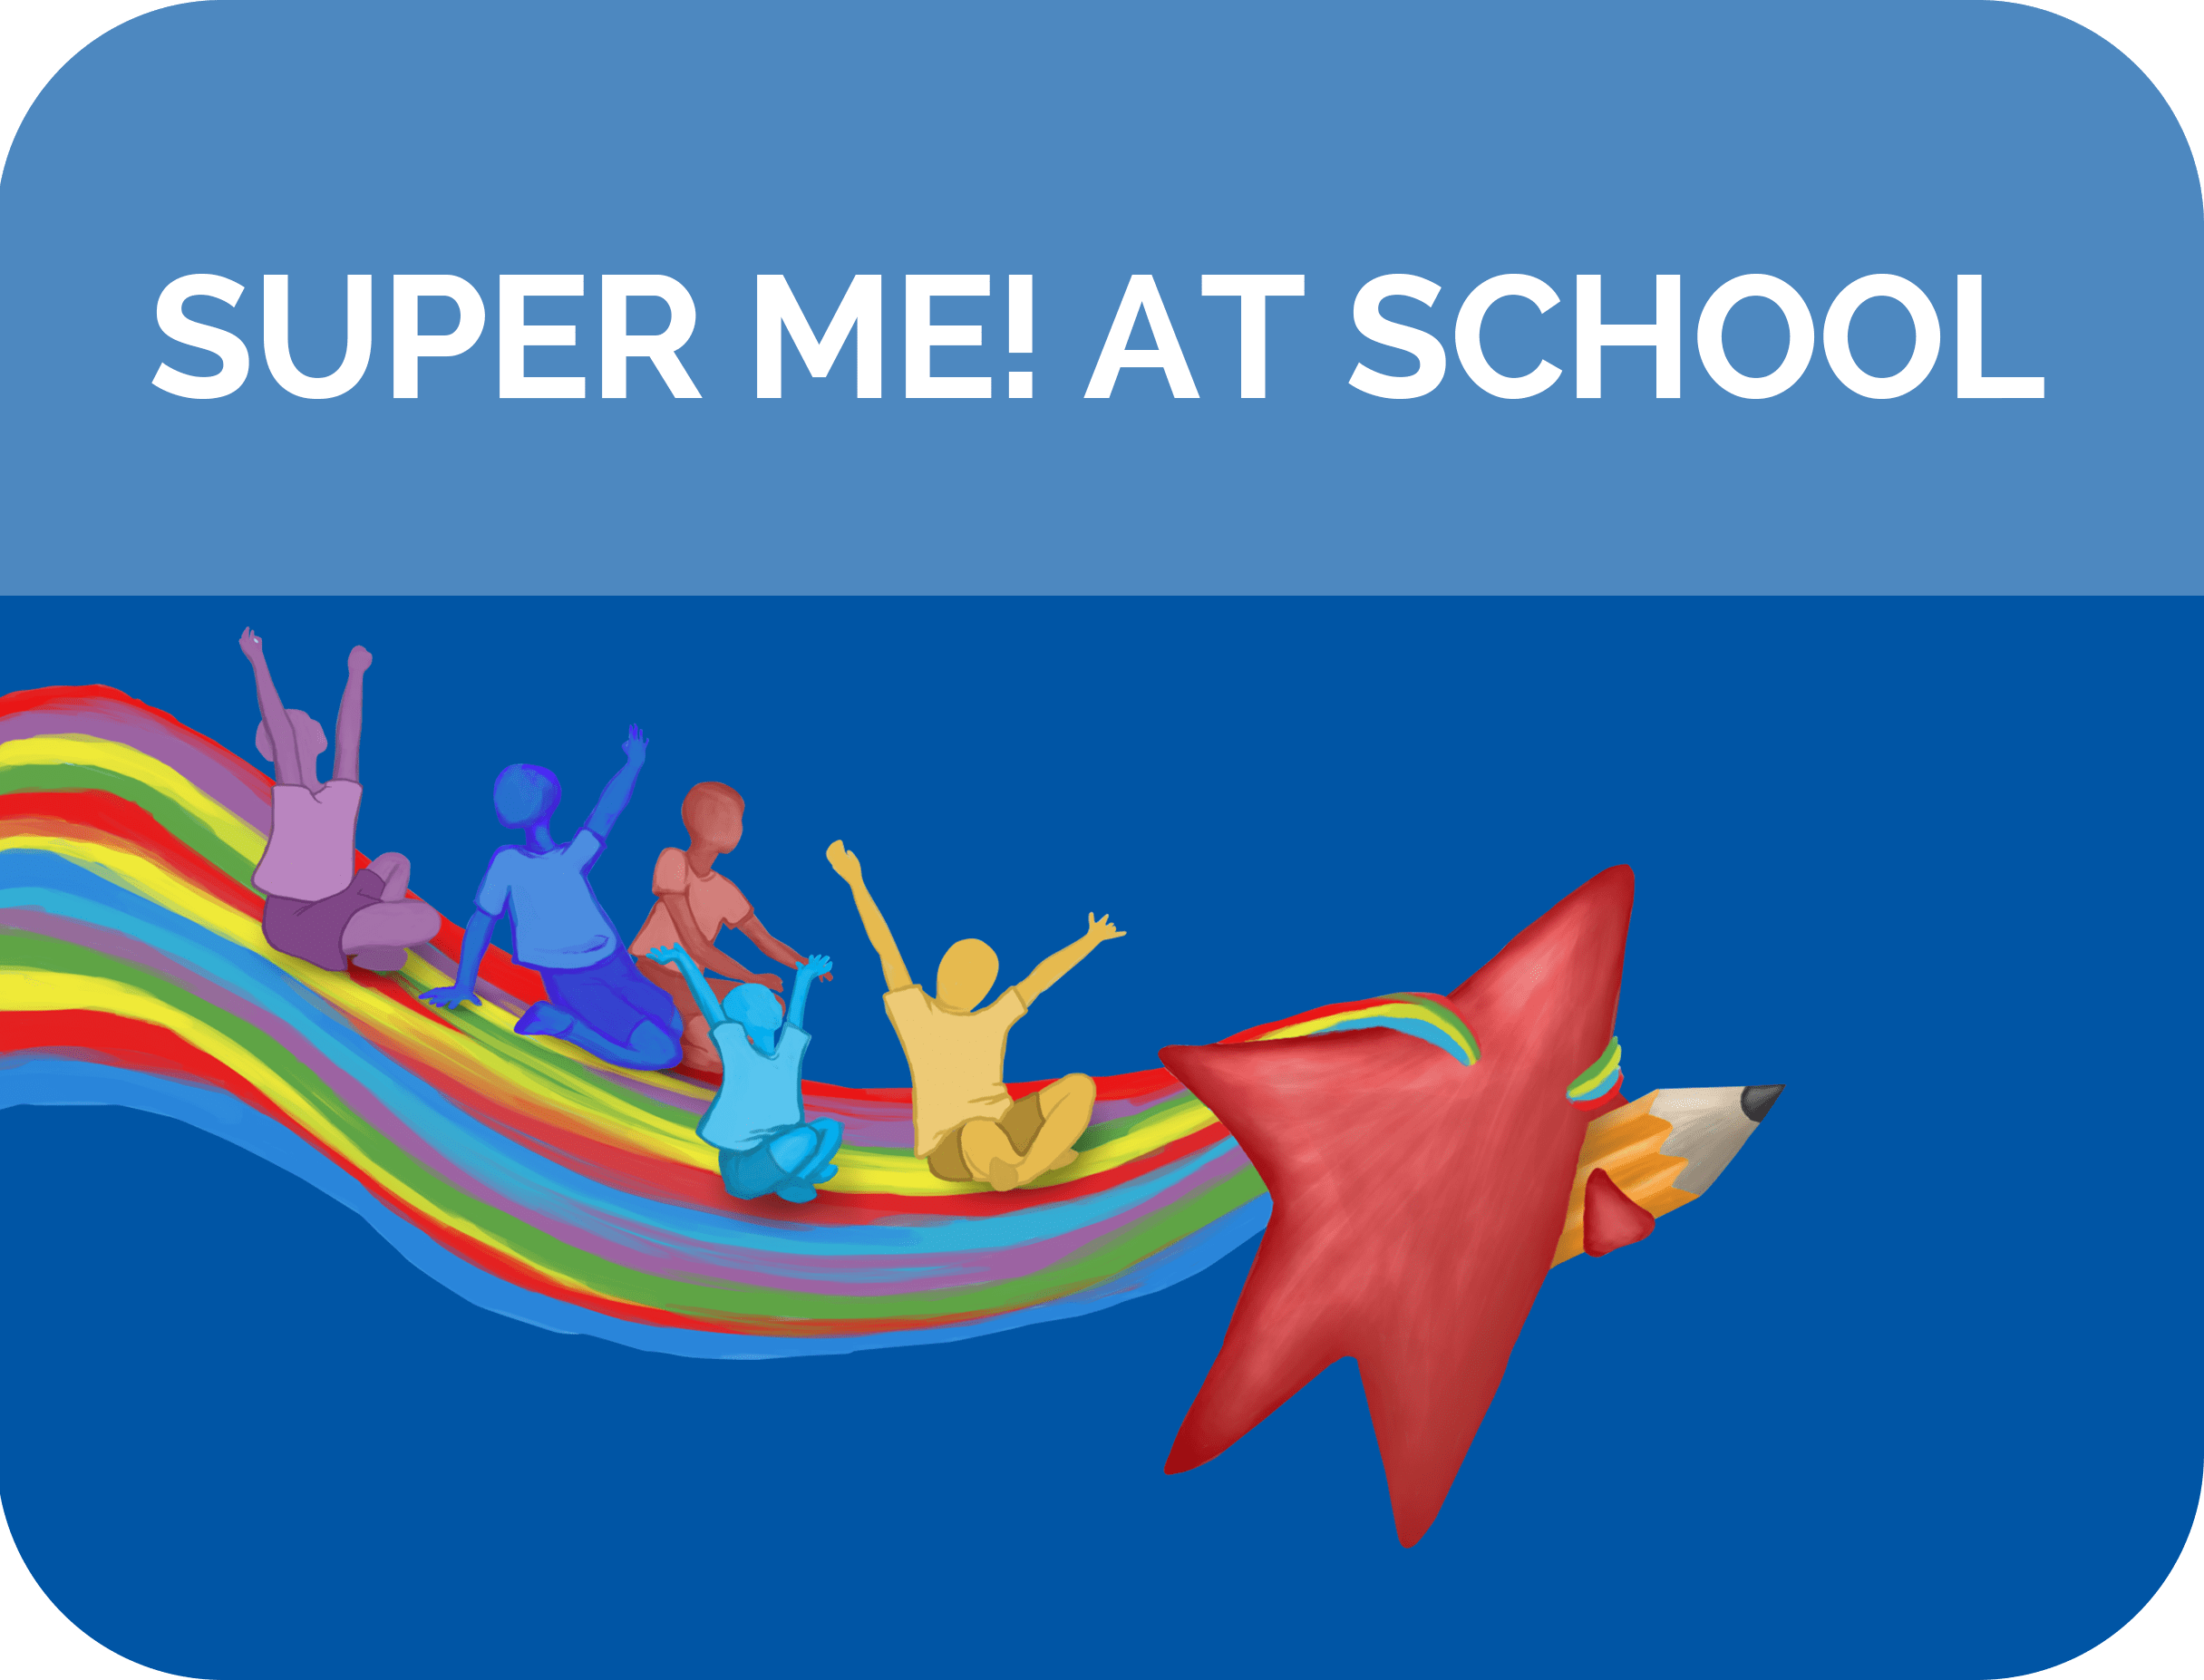 Super me! at School